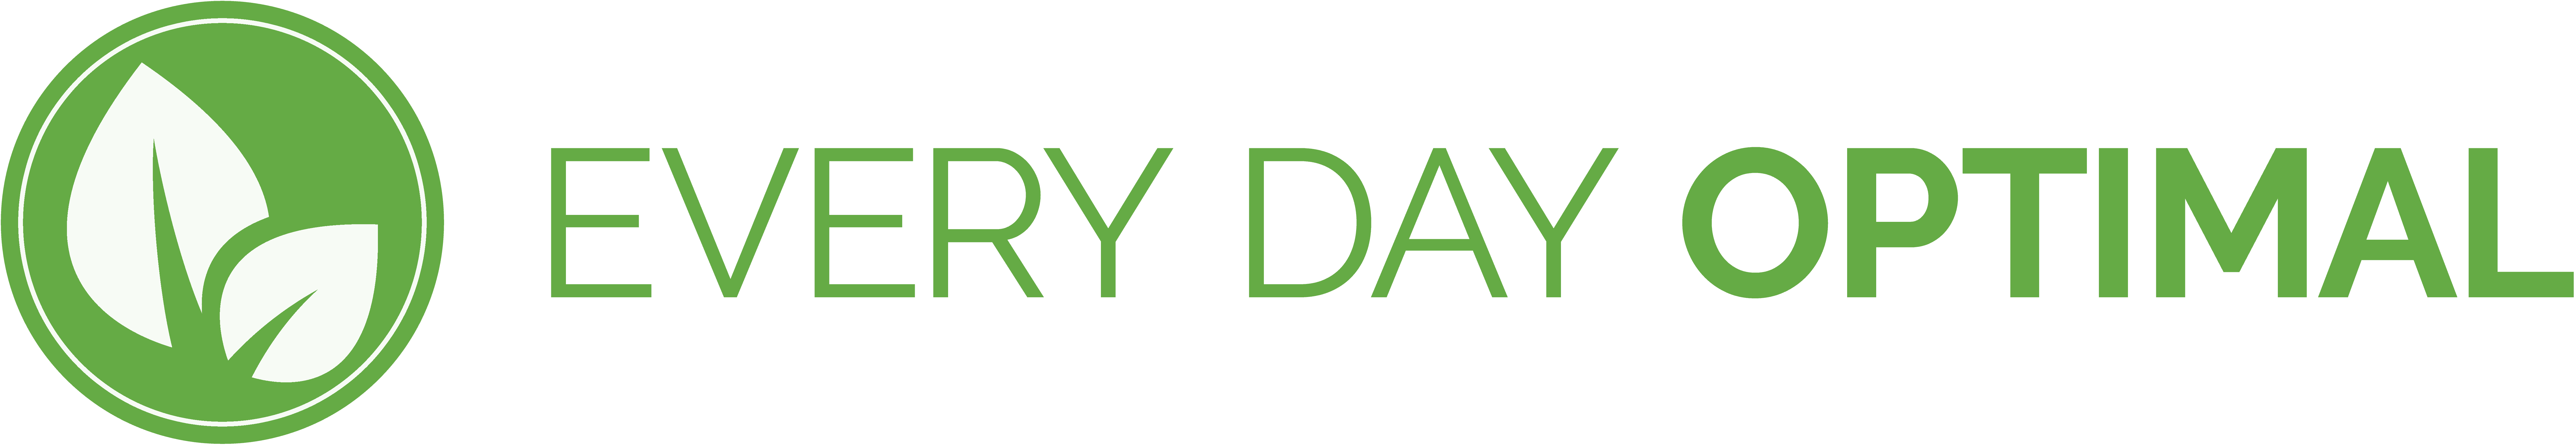 every-day-optimal-logo